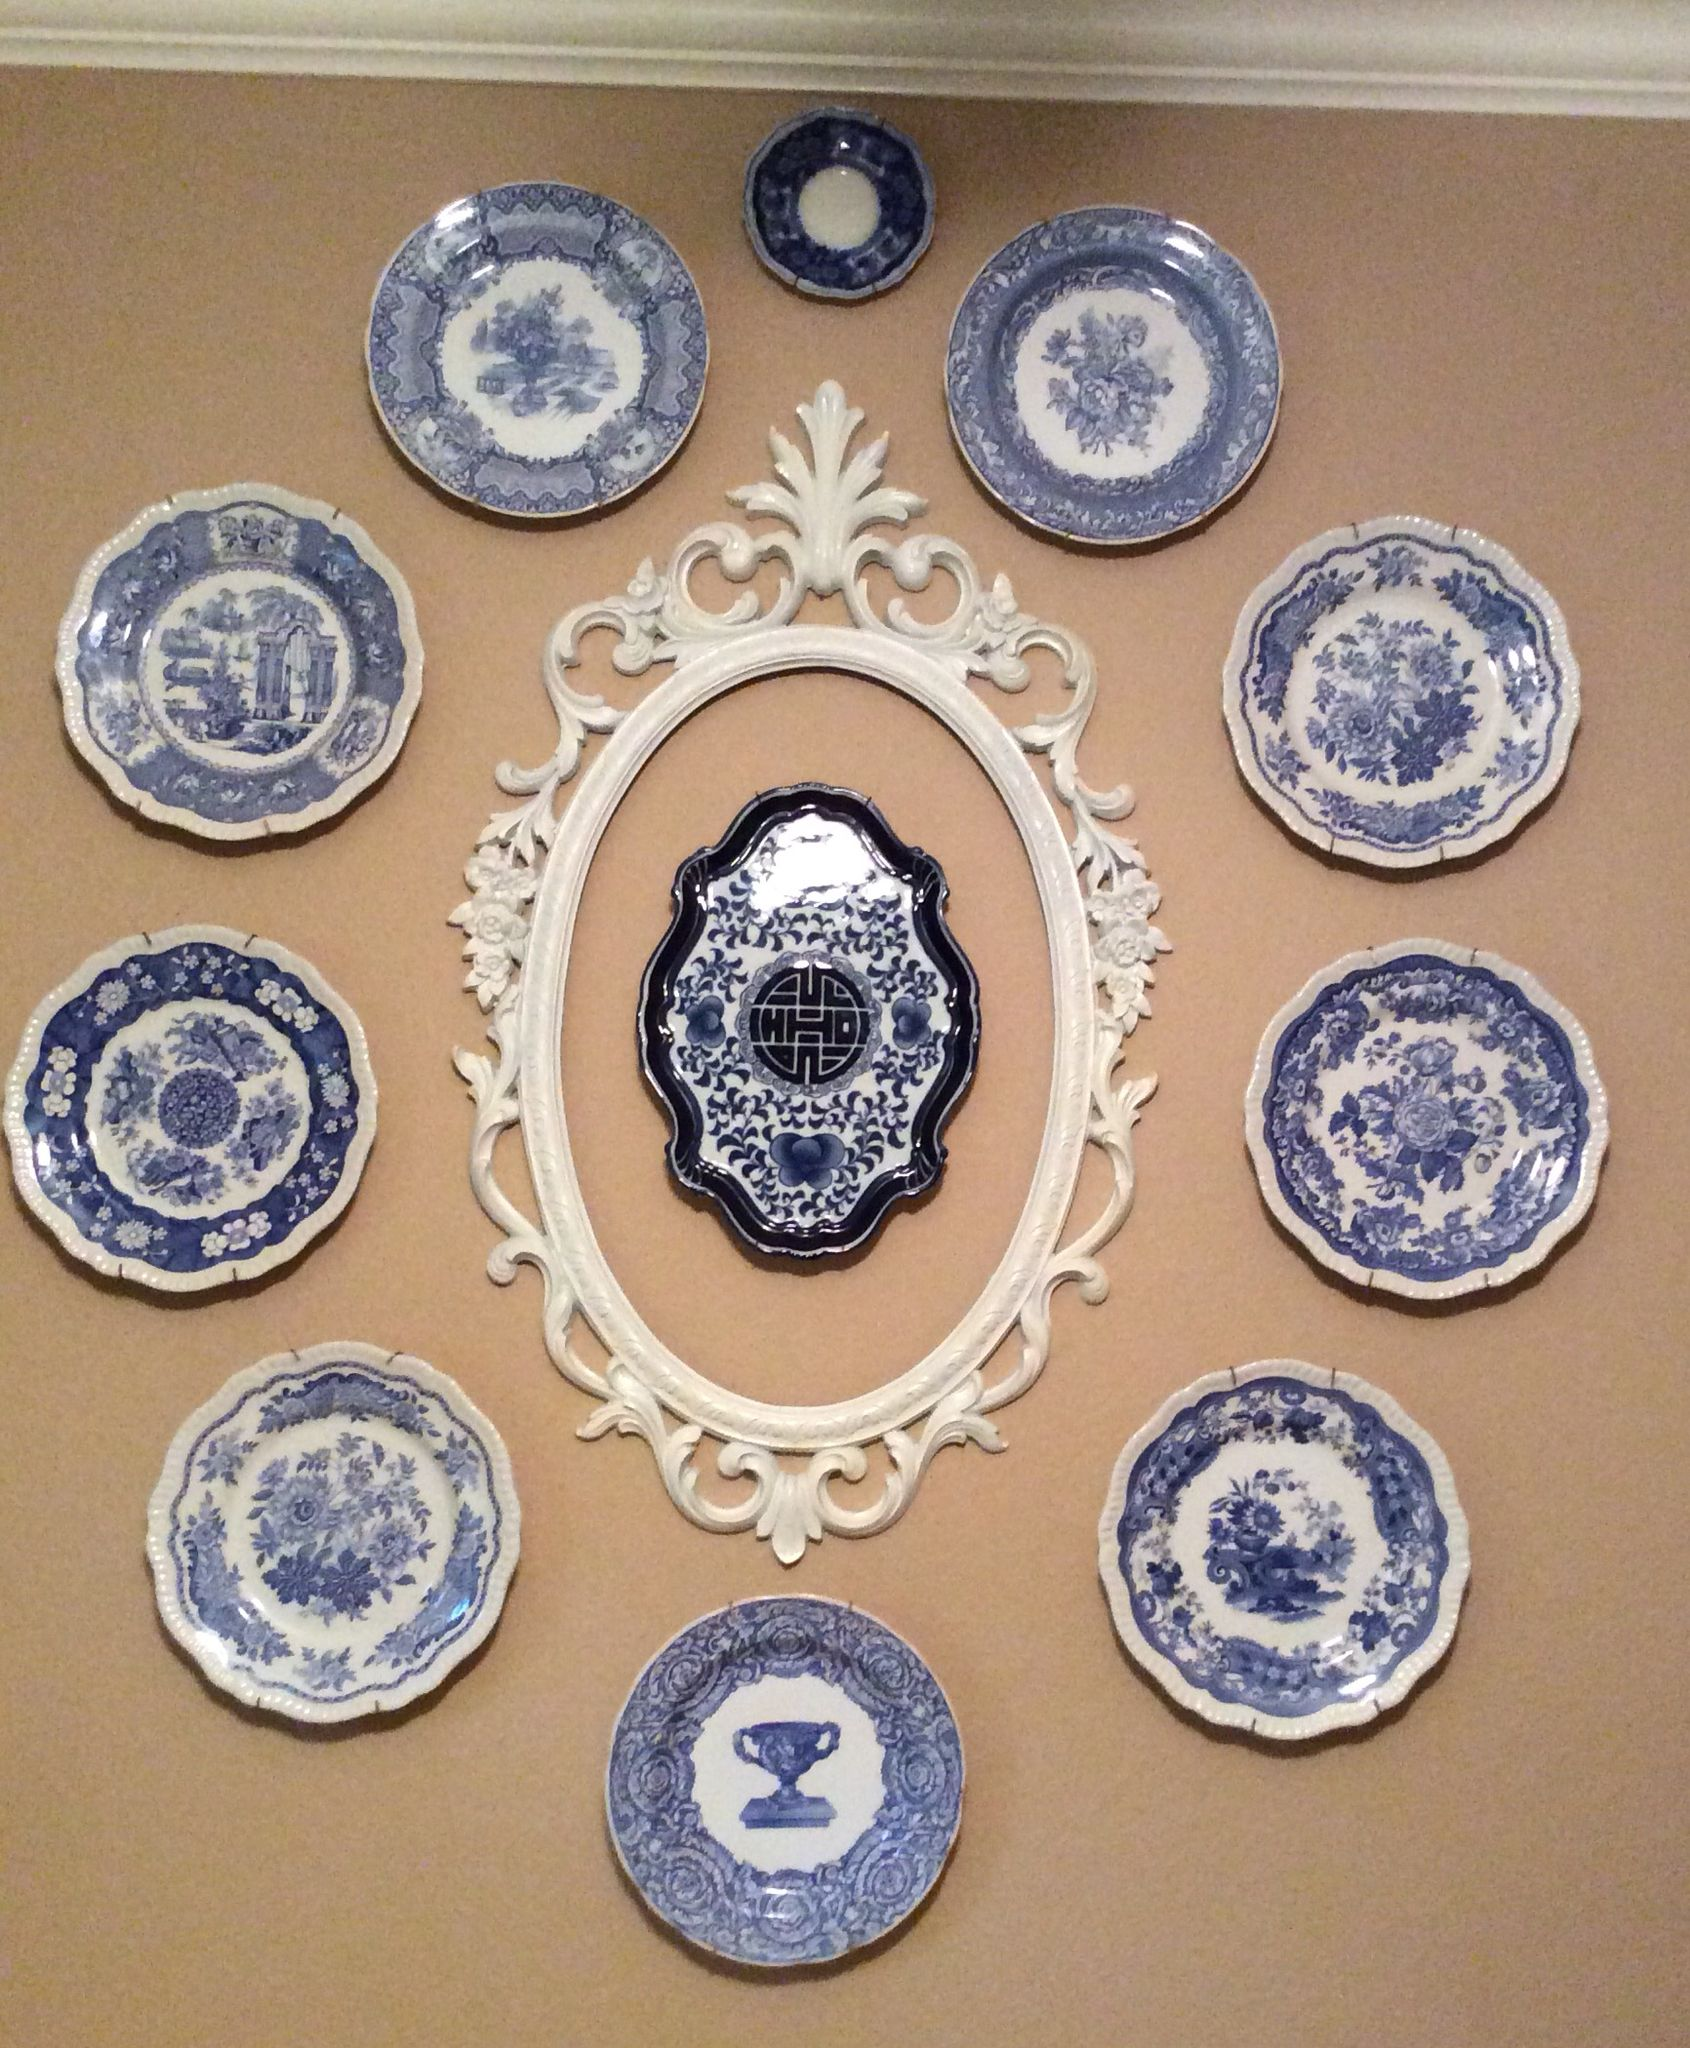 Blue White And Beige Decor Plates On Wall China